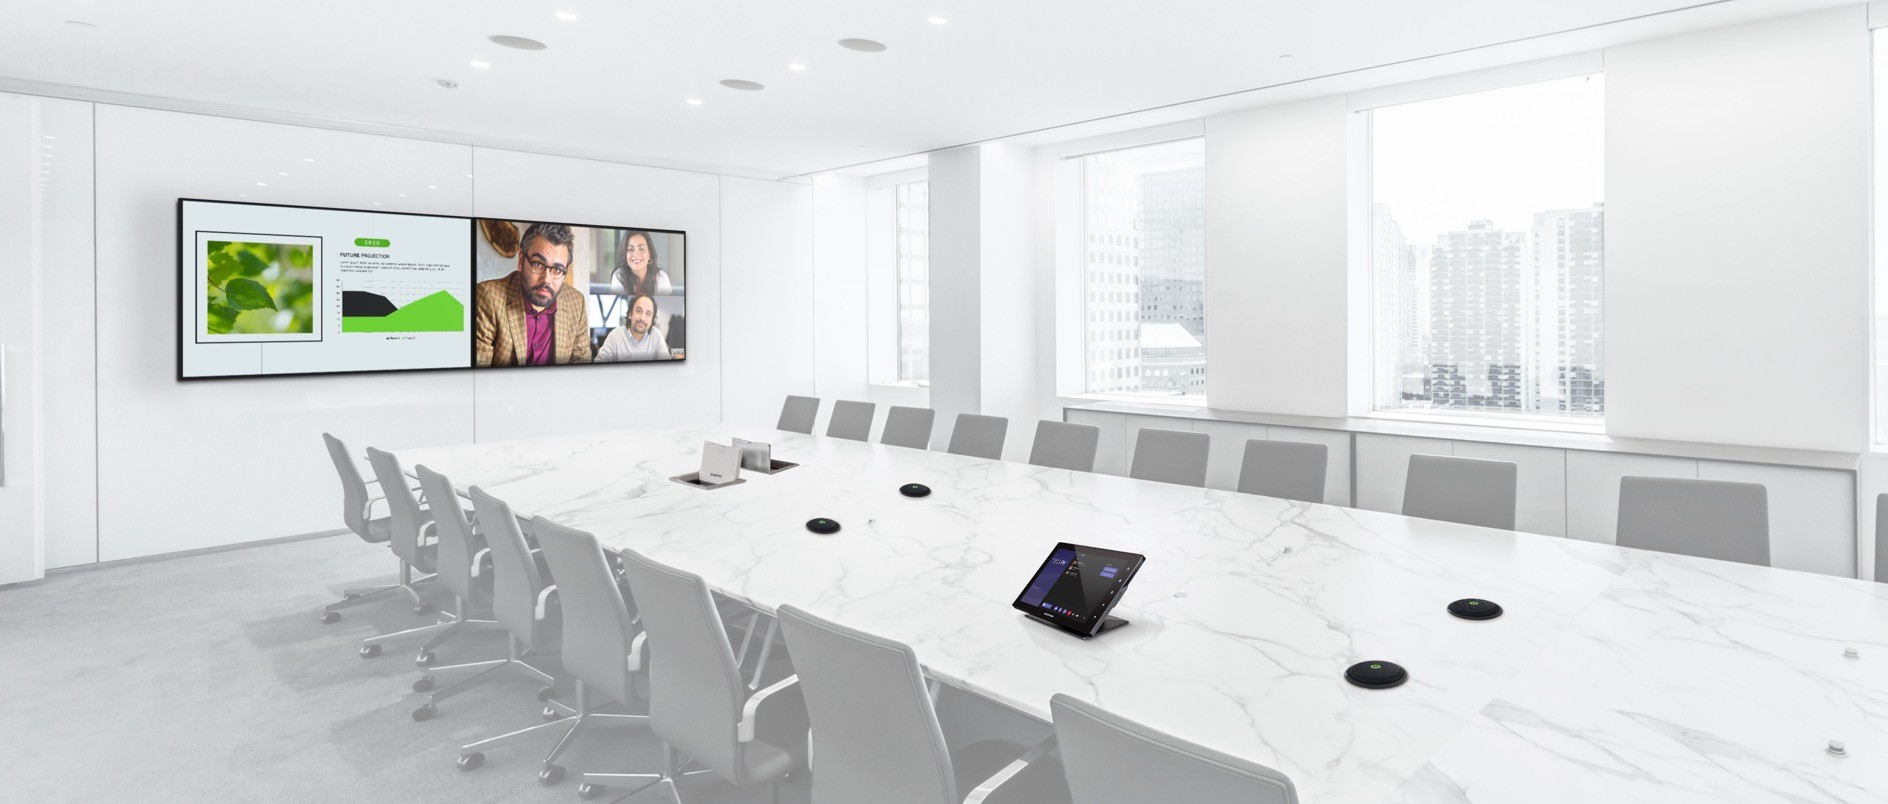 Commercial AV solutions